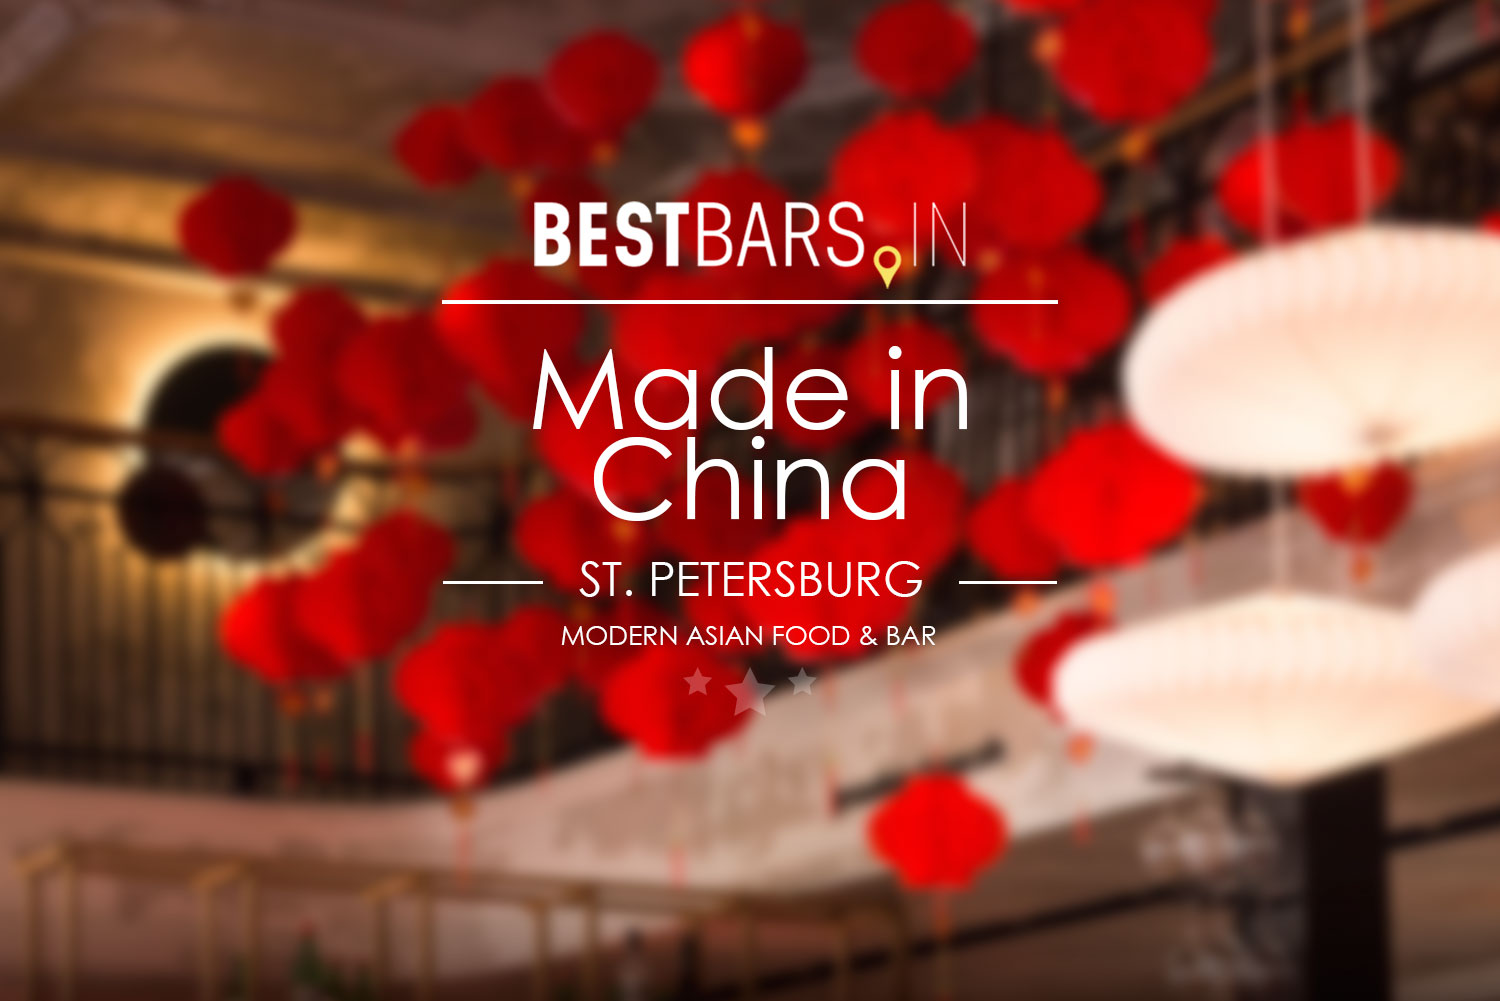 Made in China bar and restaurant in St. Petersburg